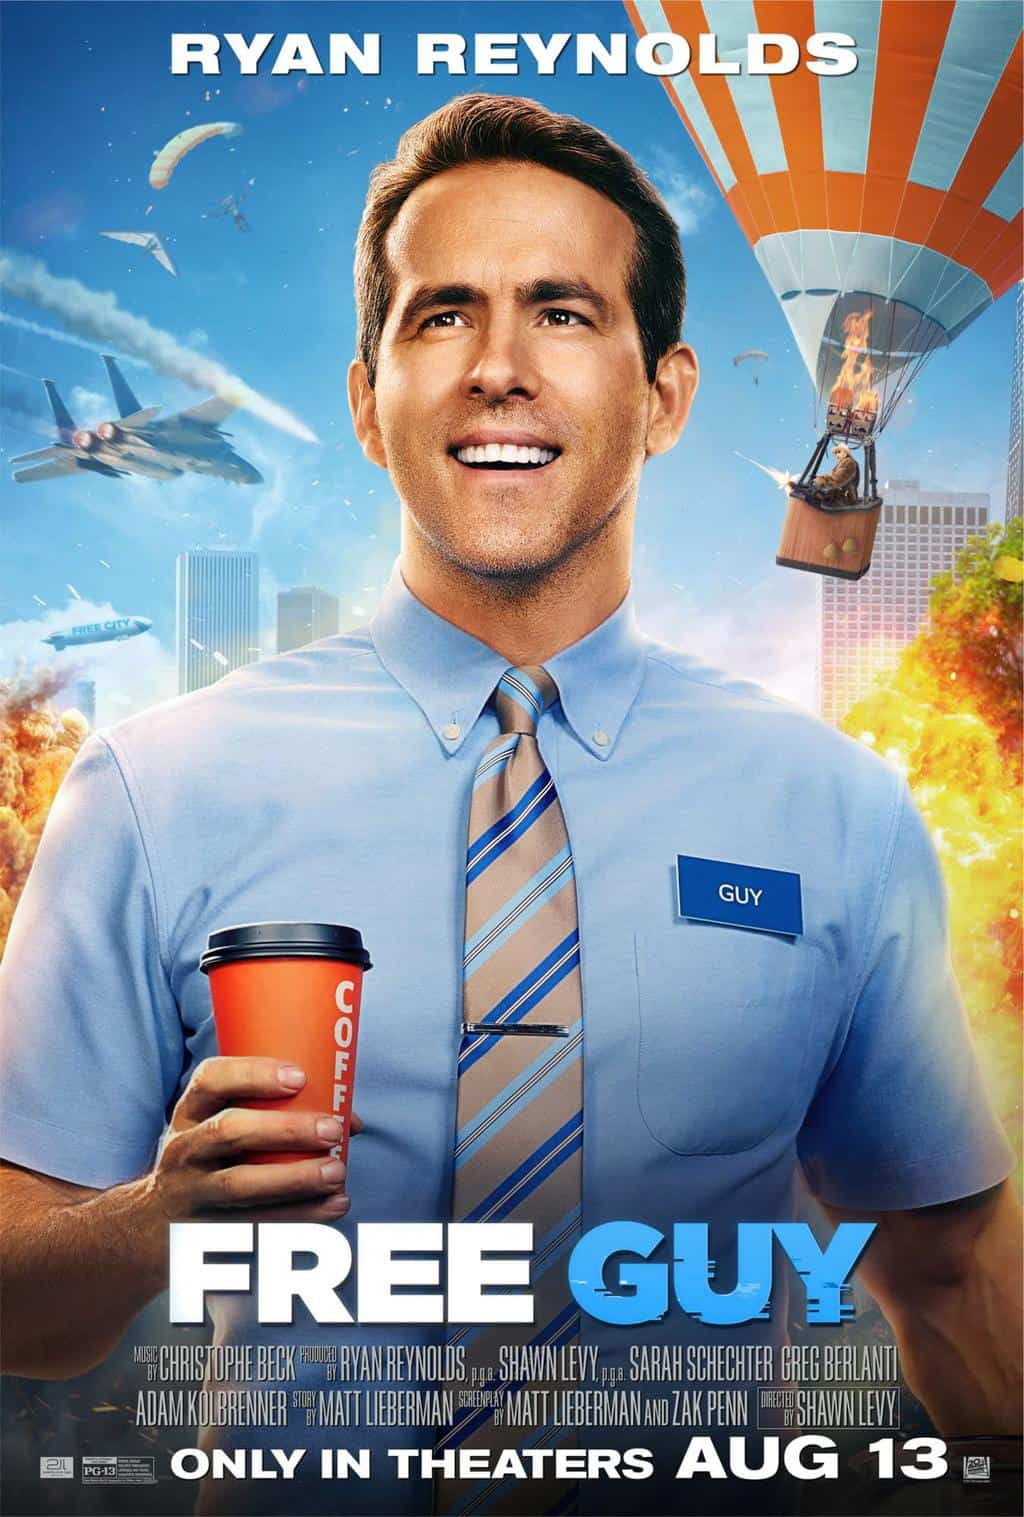 parent guide free guy movie poster